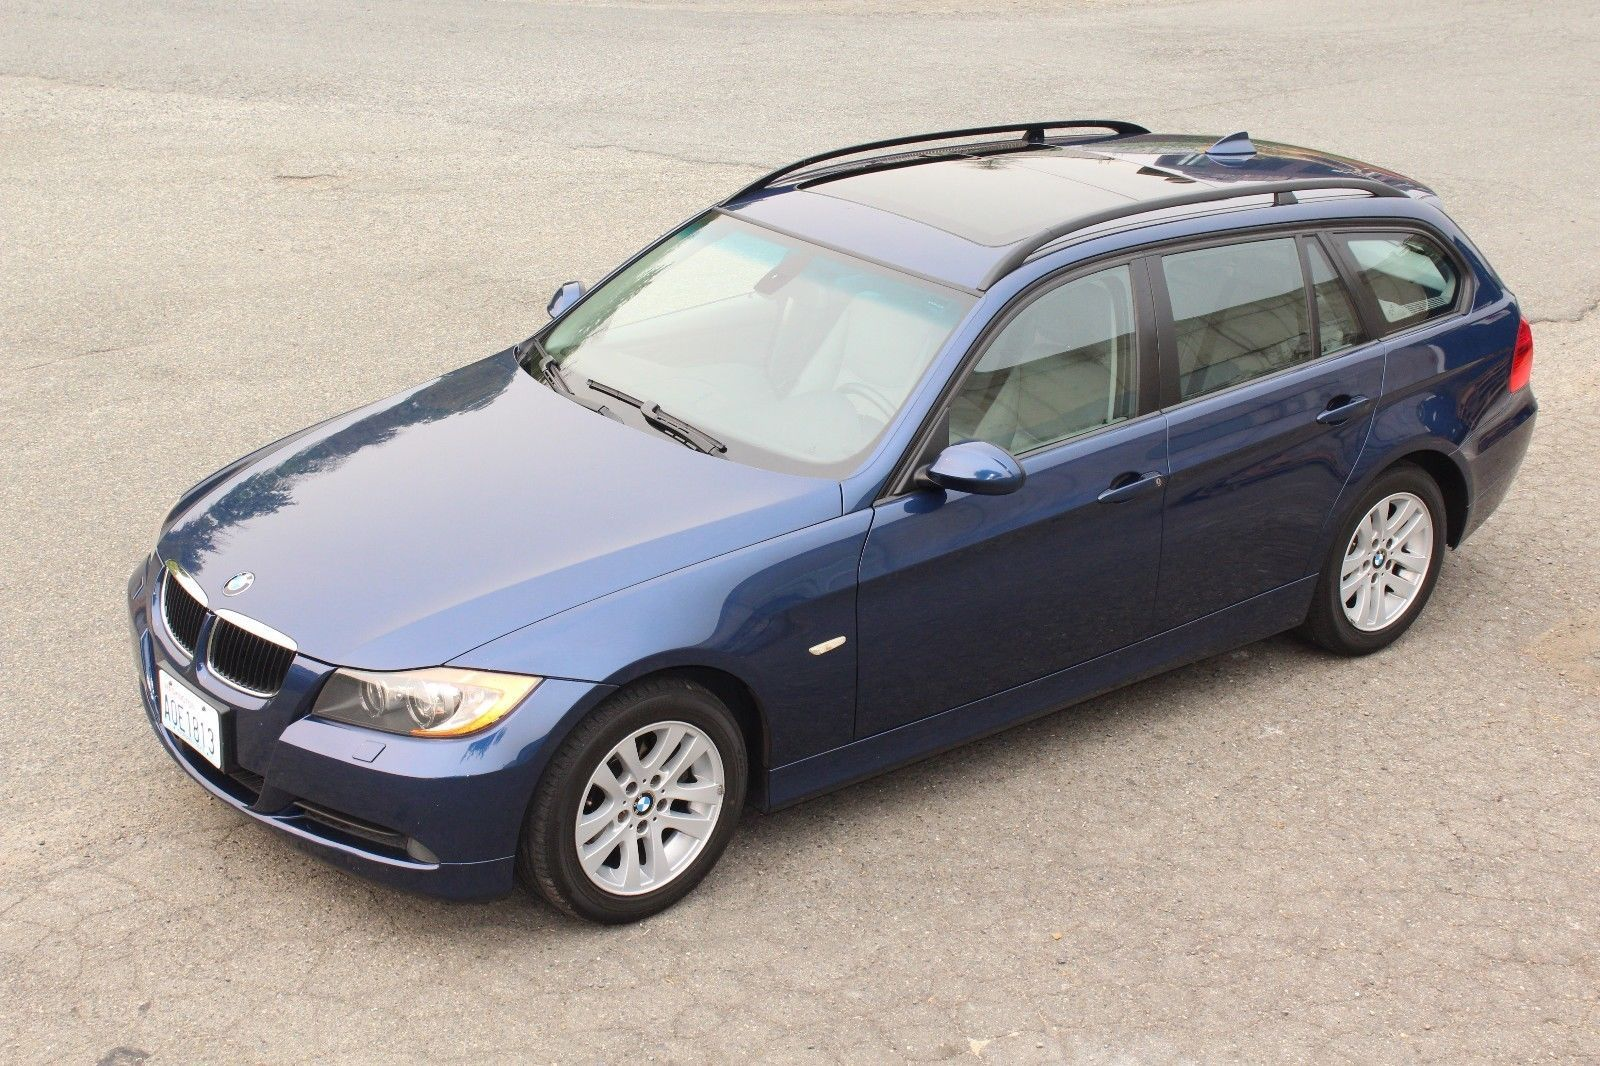 Awesome Awesome BMW Series BMW Xi Touring Rare - 2006 bmw 325xi manual